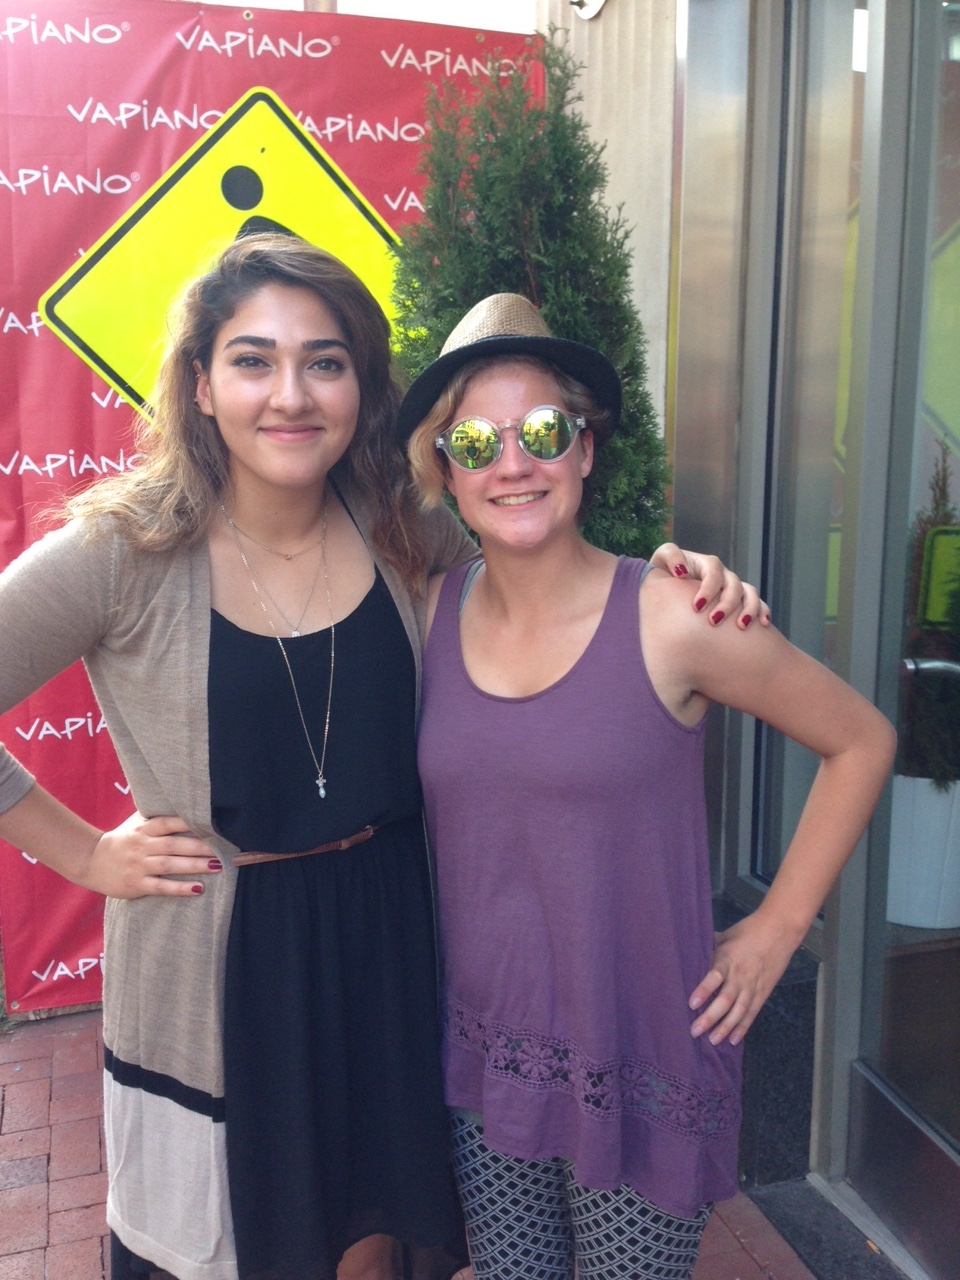 Left to Right: Farnaz Alimehri and Natalie Doggett